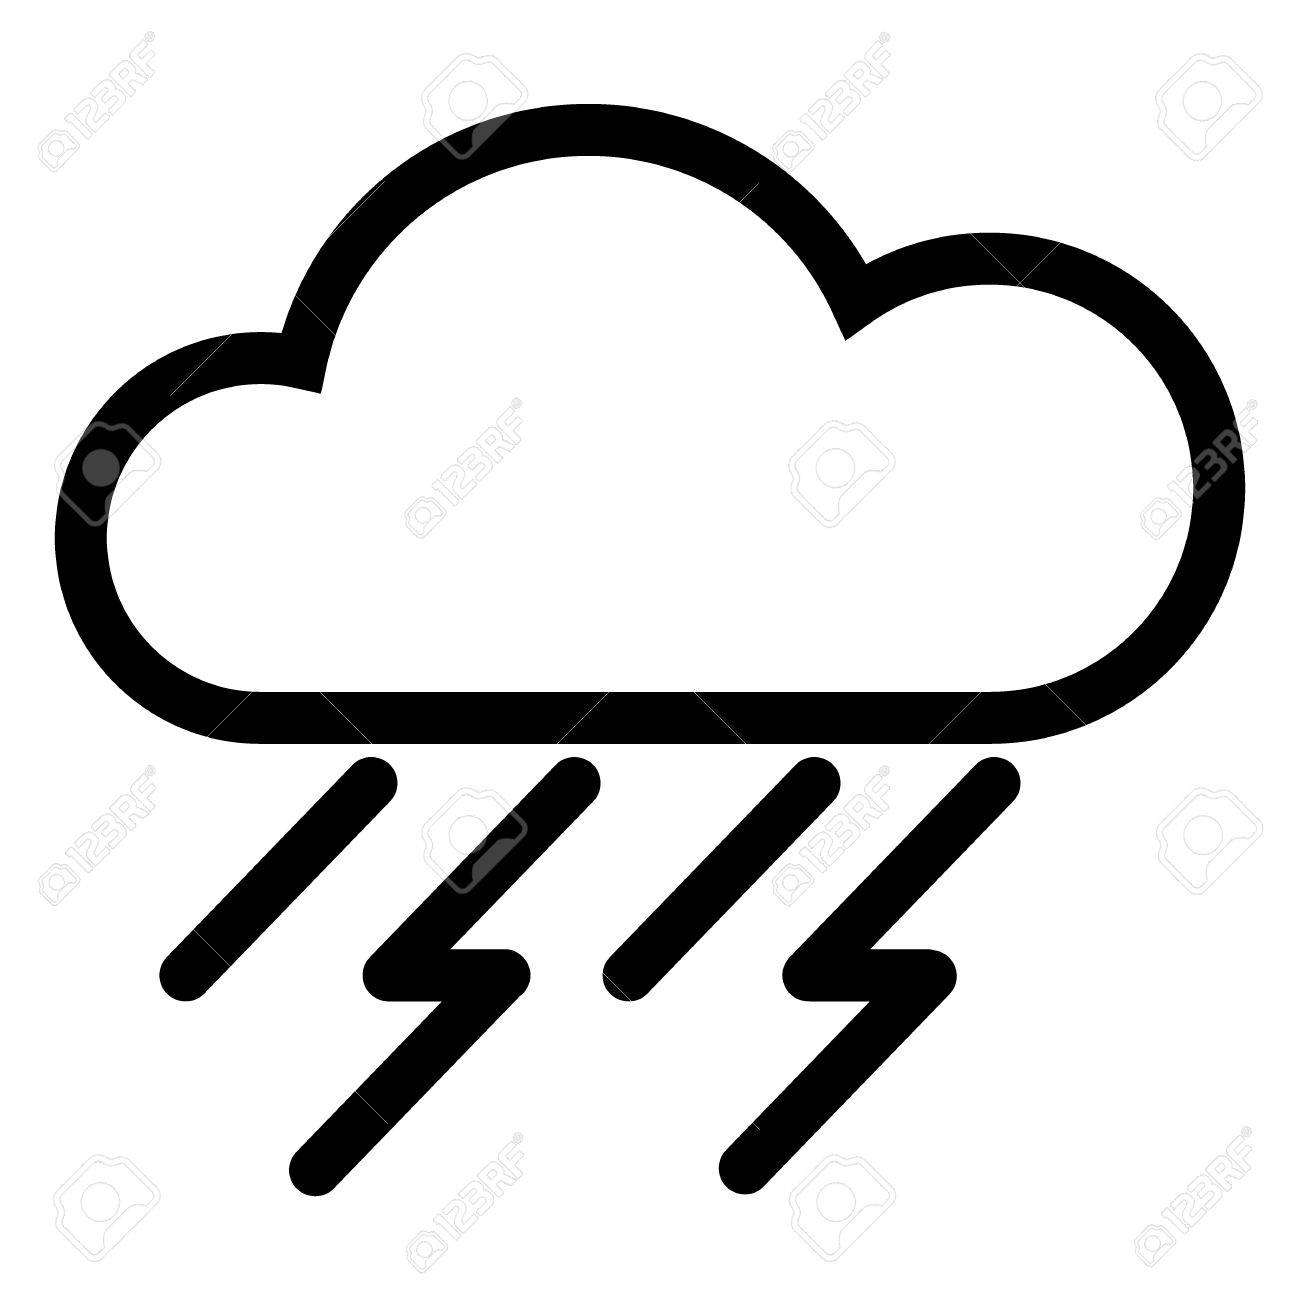 Rainy Weather Clipart | Free download best Rainy Weather